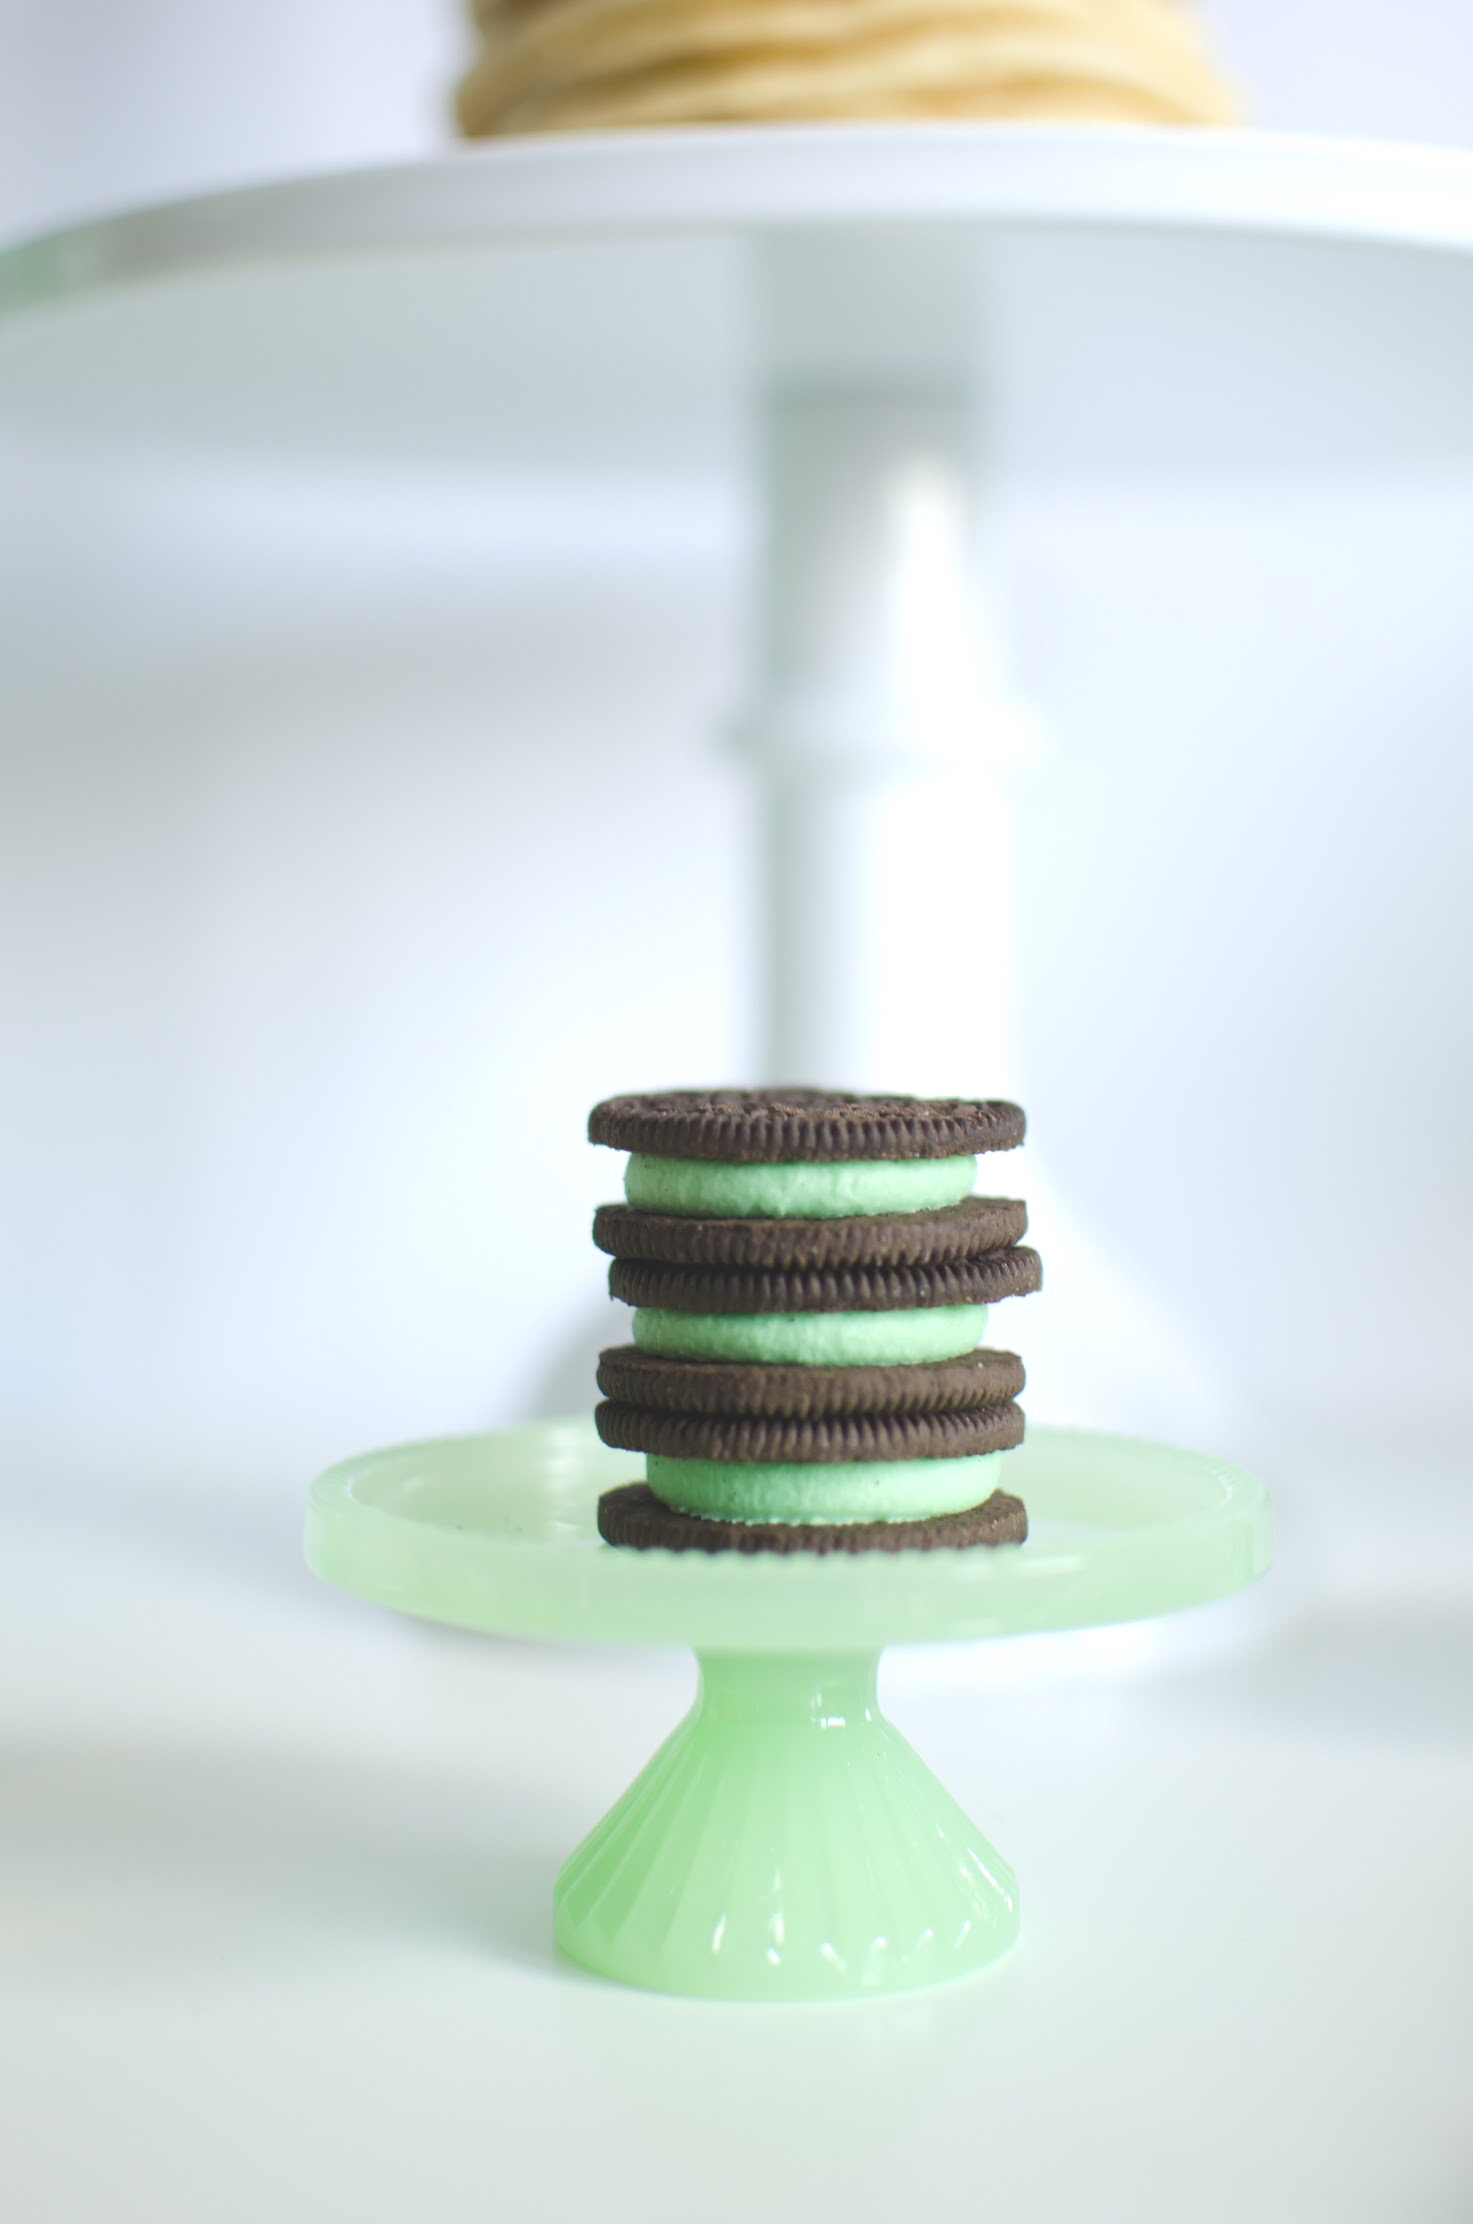 Oreos with green cream pair up perfectly for this St. Patrick's Day Breakfast Party from Mint Event Design www.minteventdesign.com #partyideas #partydecorations #saintpatricksday #stpatricksday #cookies